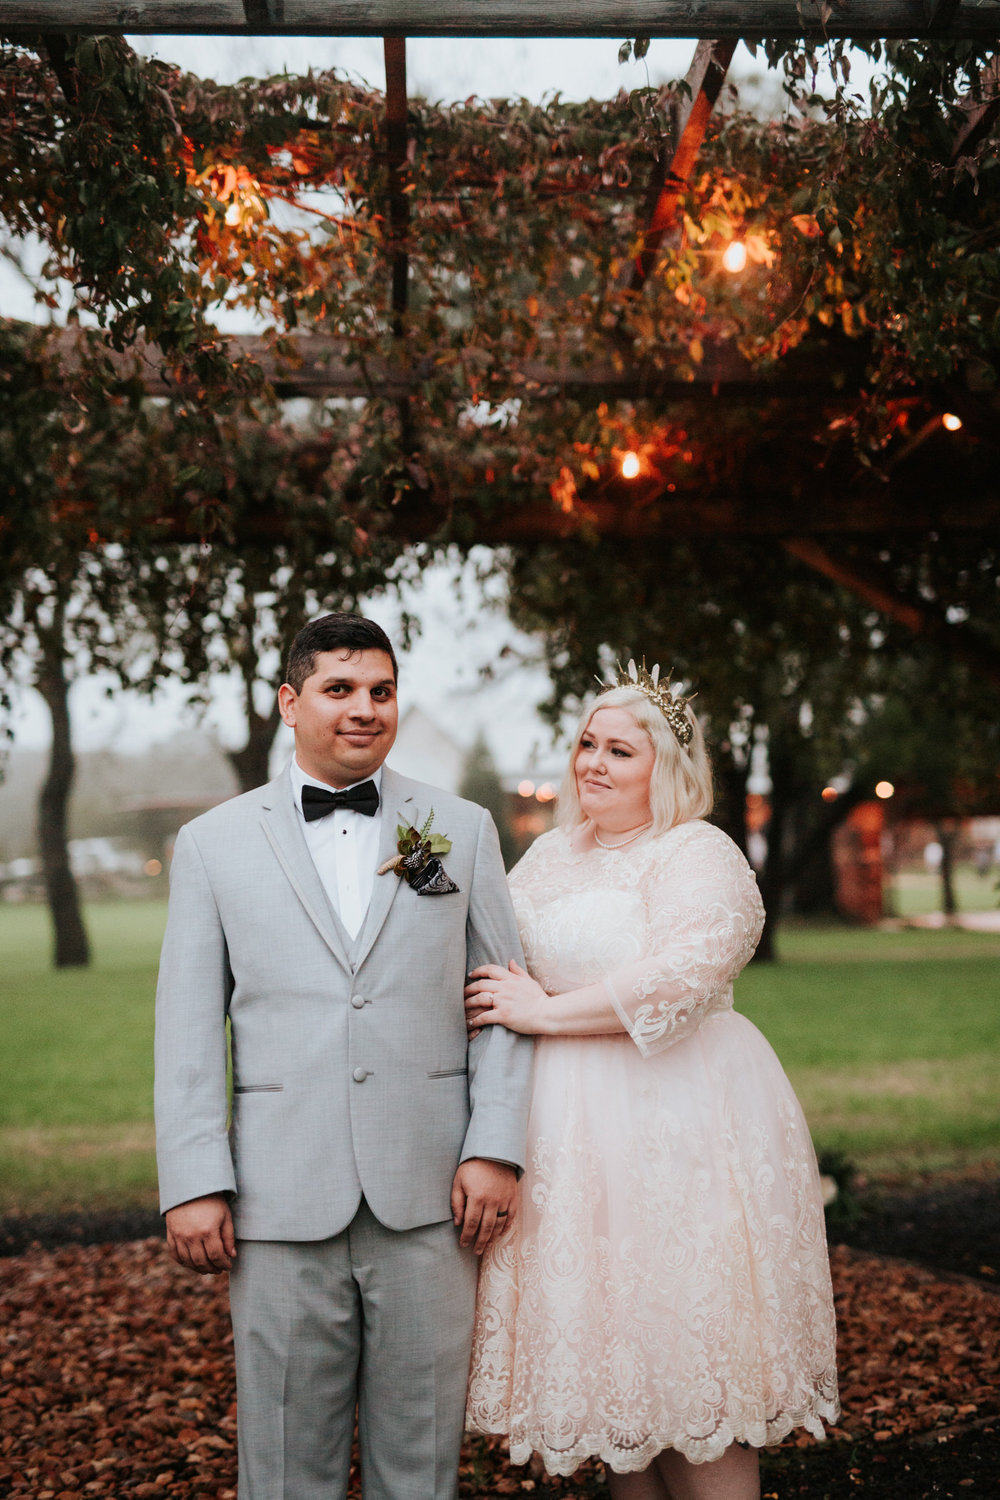 Bride and groom at Pecan Springs Ranch wedding